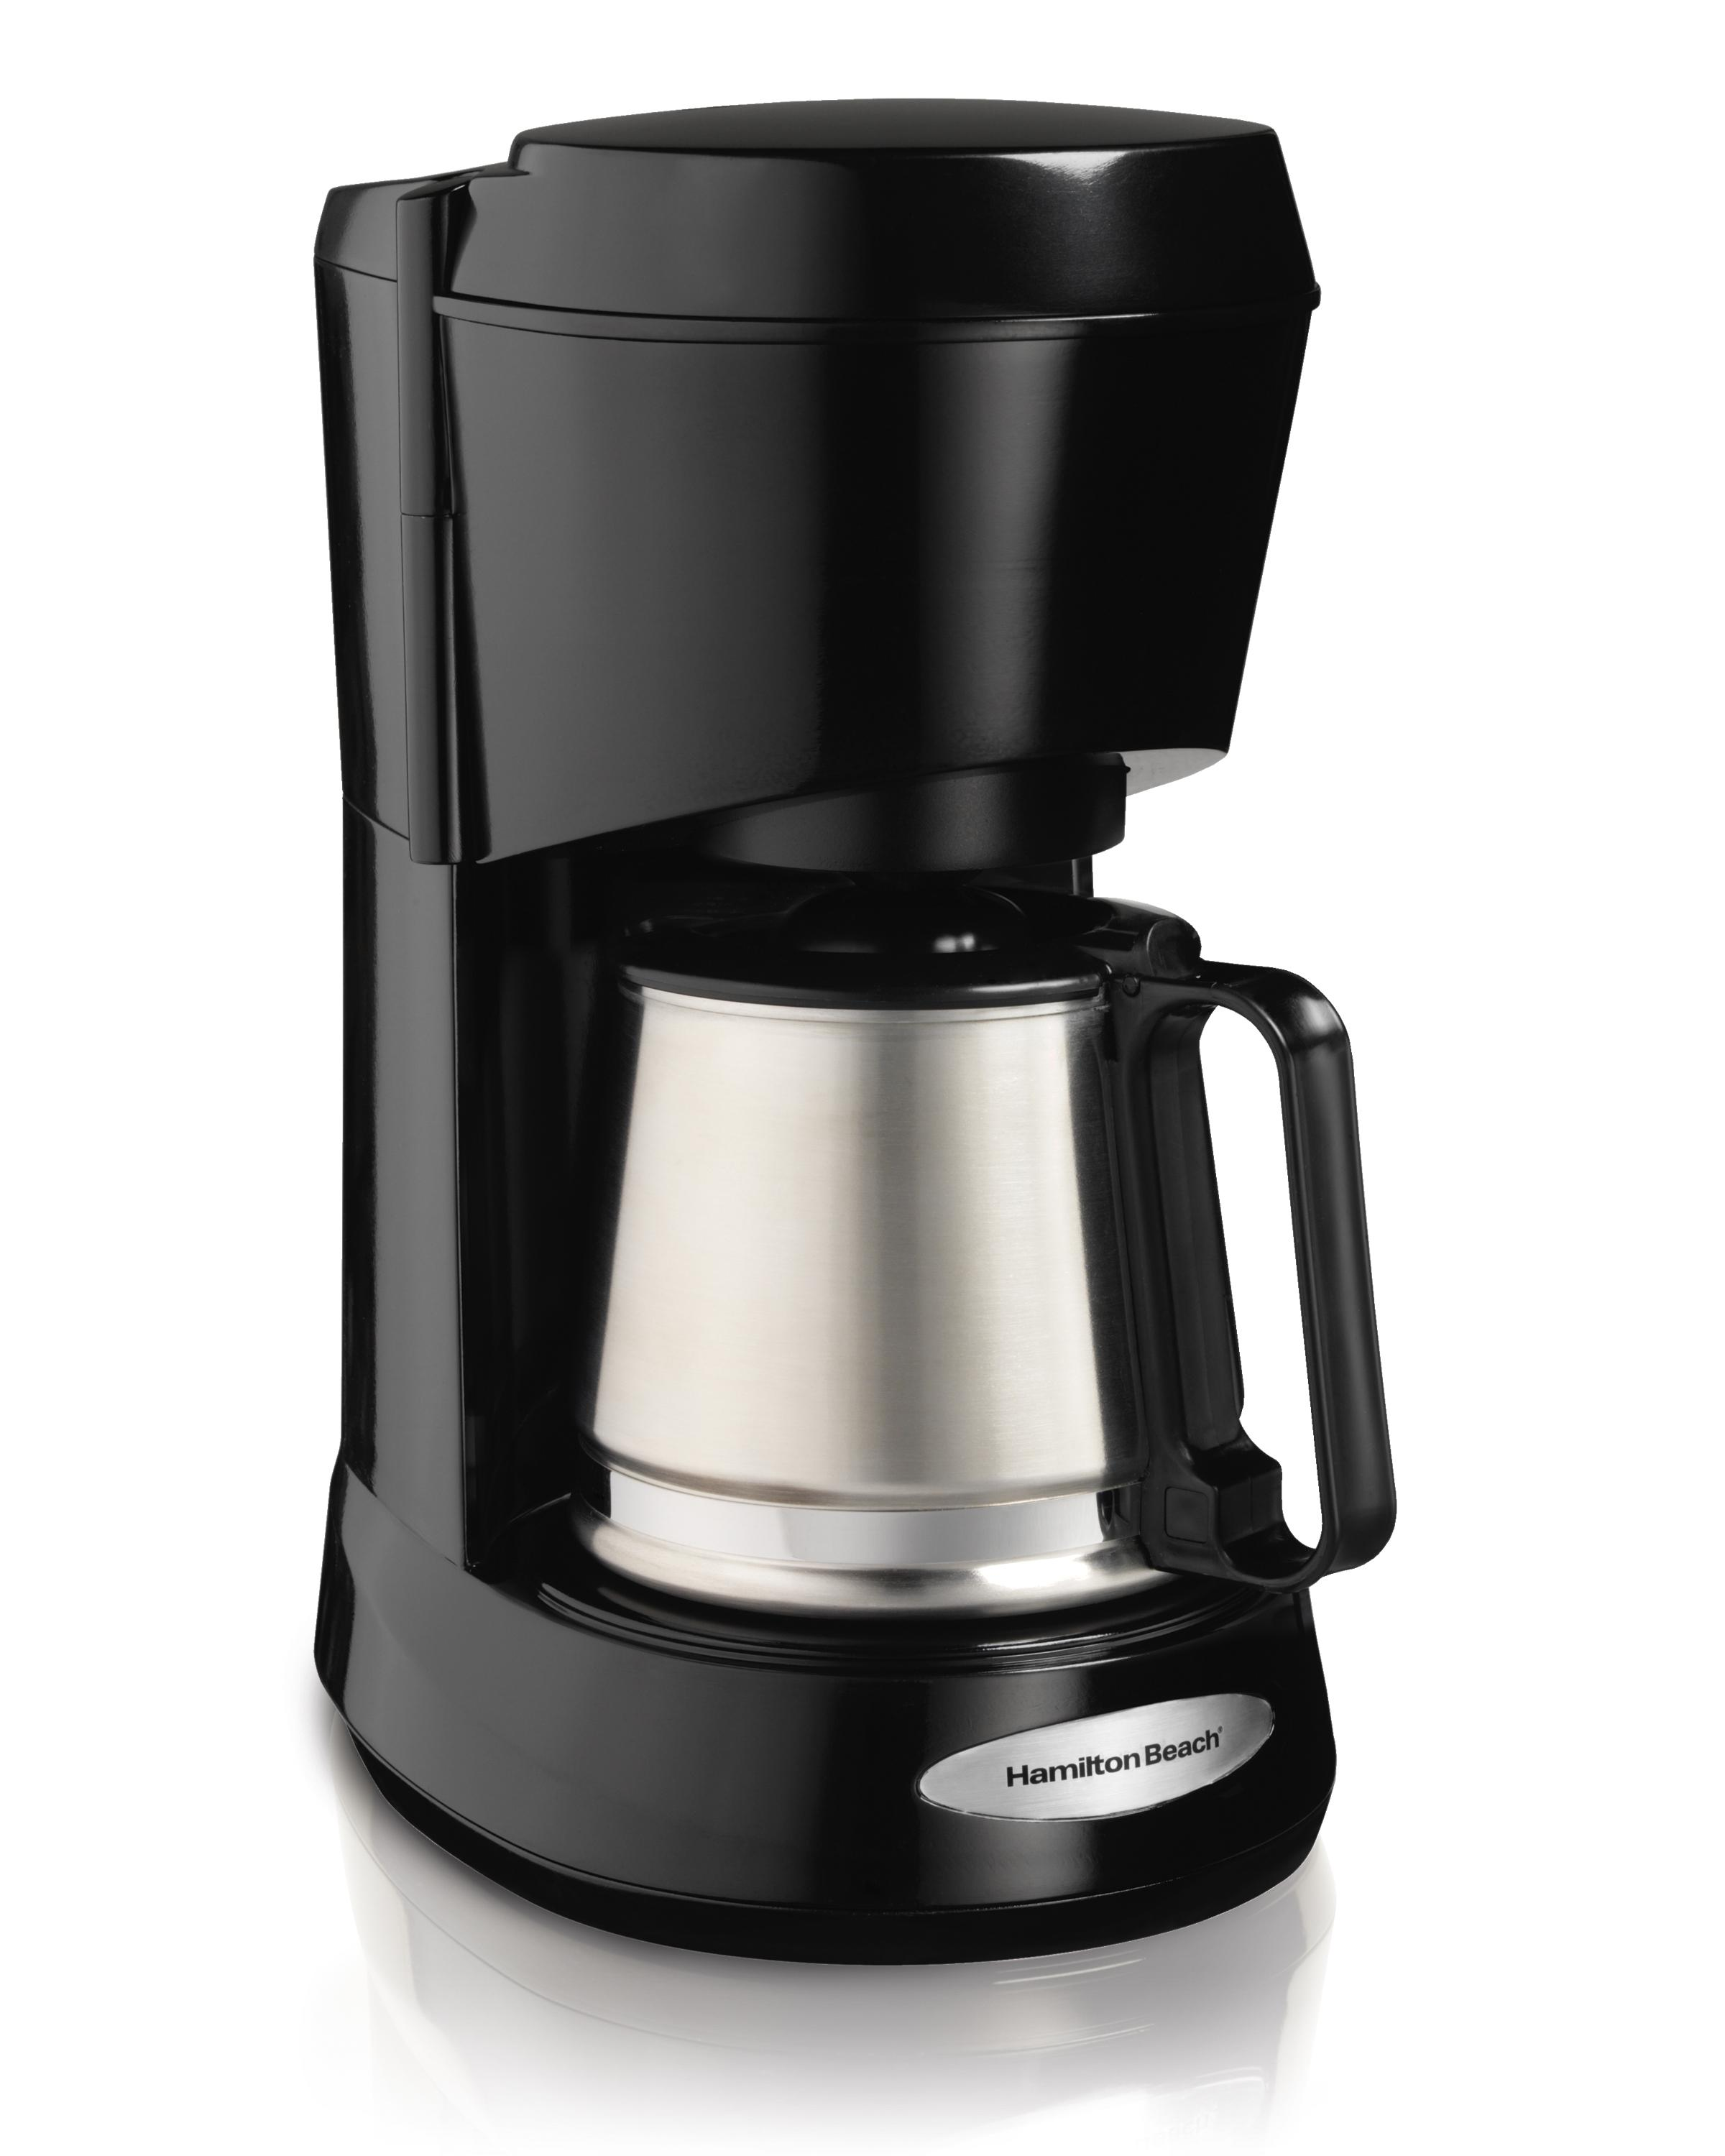 Hanabishi Coffee Maker 1 Cup : Amazon.com: Hamilton Beach 5-Cup Coffee Maker with Stainless Carafe (48137): Drip Coffeemakers ...